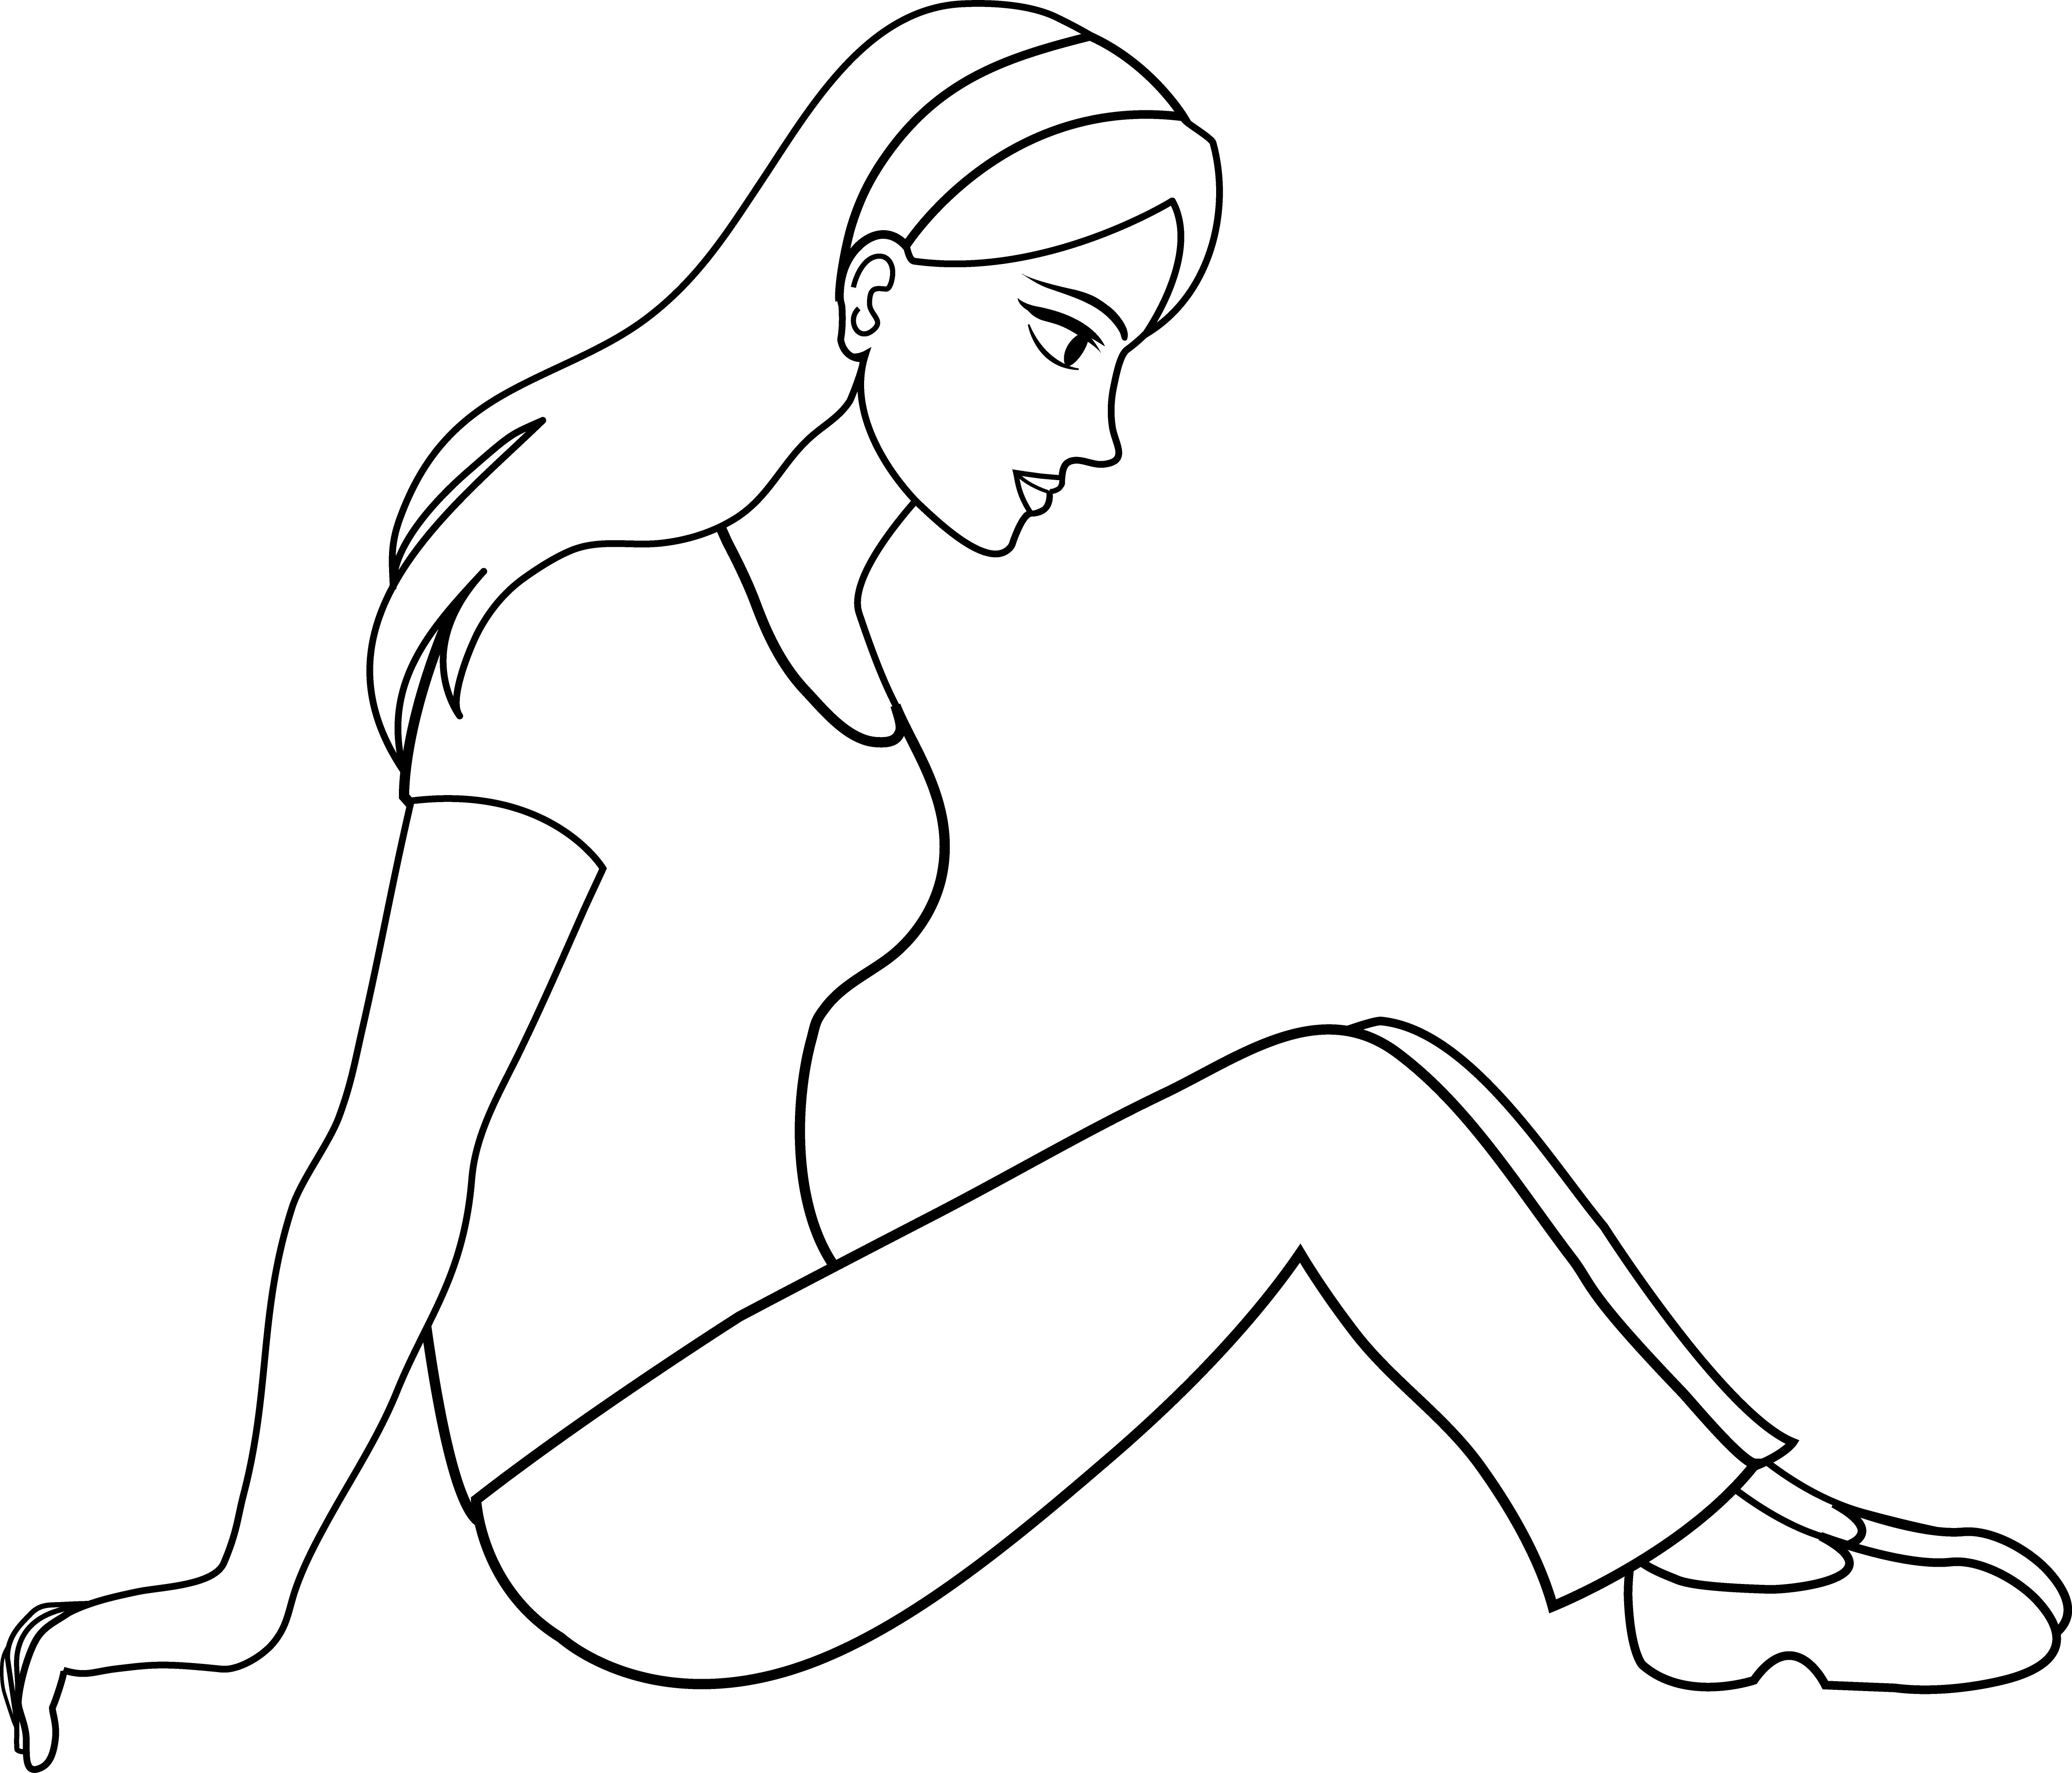 Girl Outline Clipart | Clipart Panda - Free Clipart Images